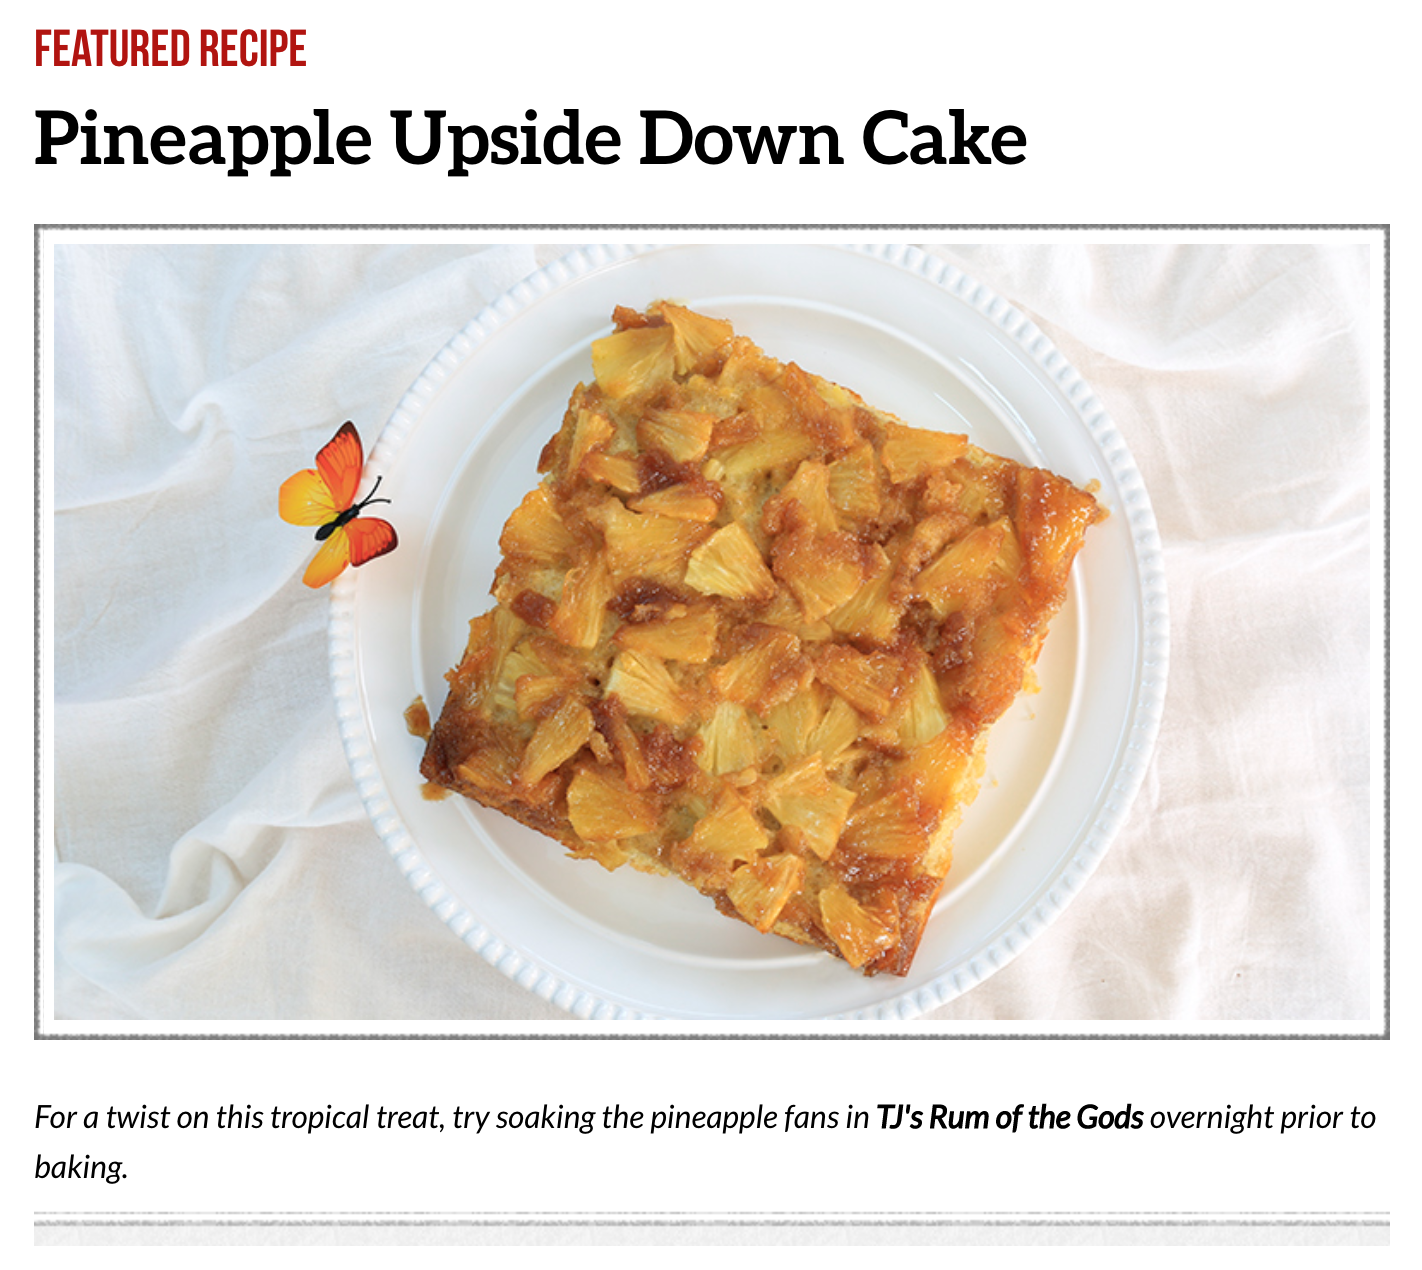 screenshot from the Trader Joe's website showing a recipe for pineapple upside down cake